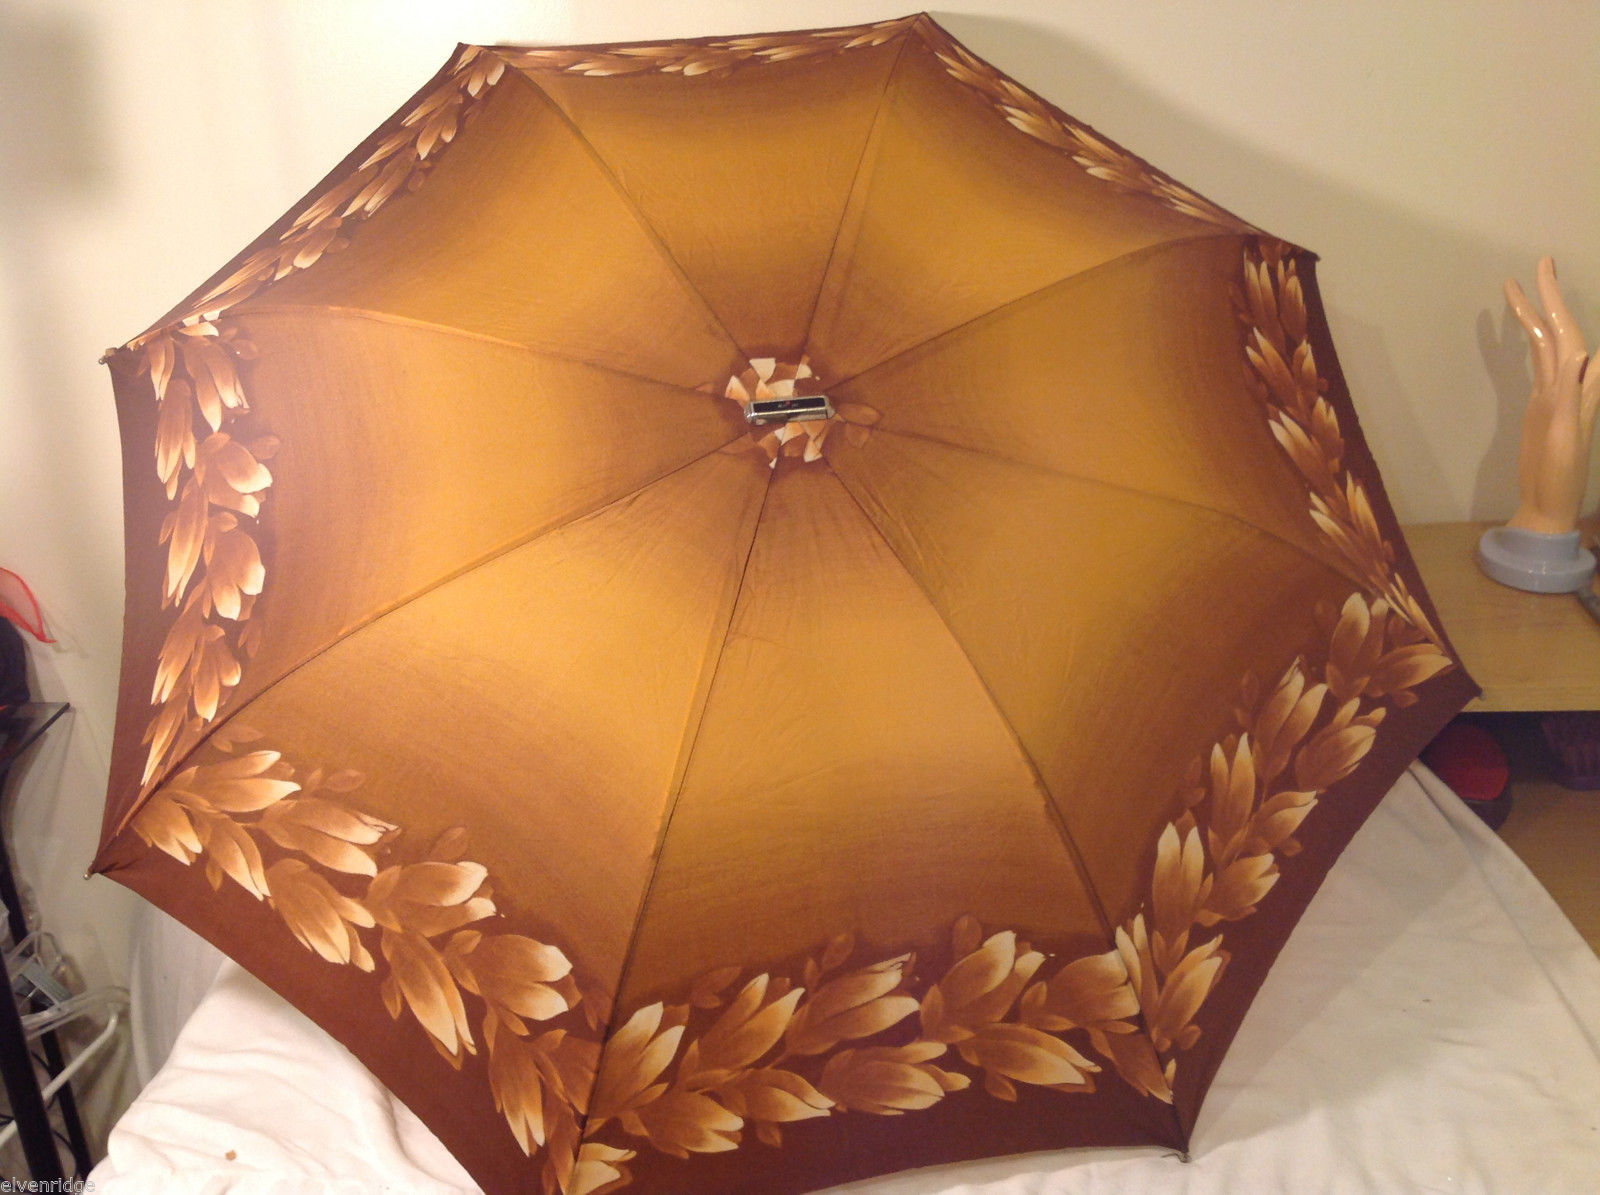 Vintage Knirps Compact Umbrella Flowers Design Light Brown Original Package